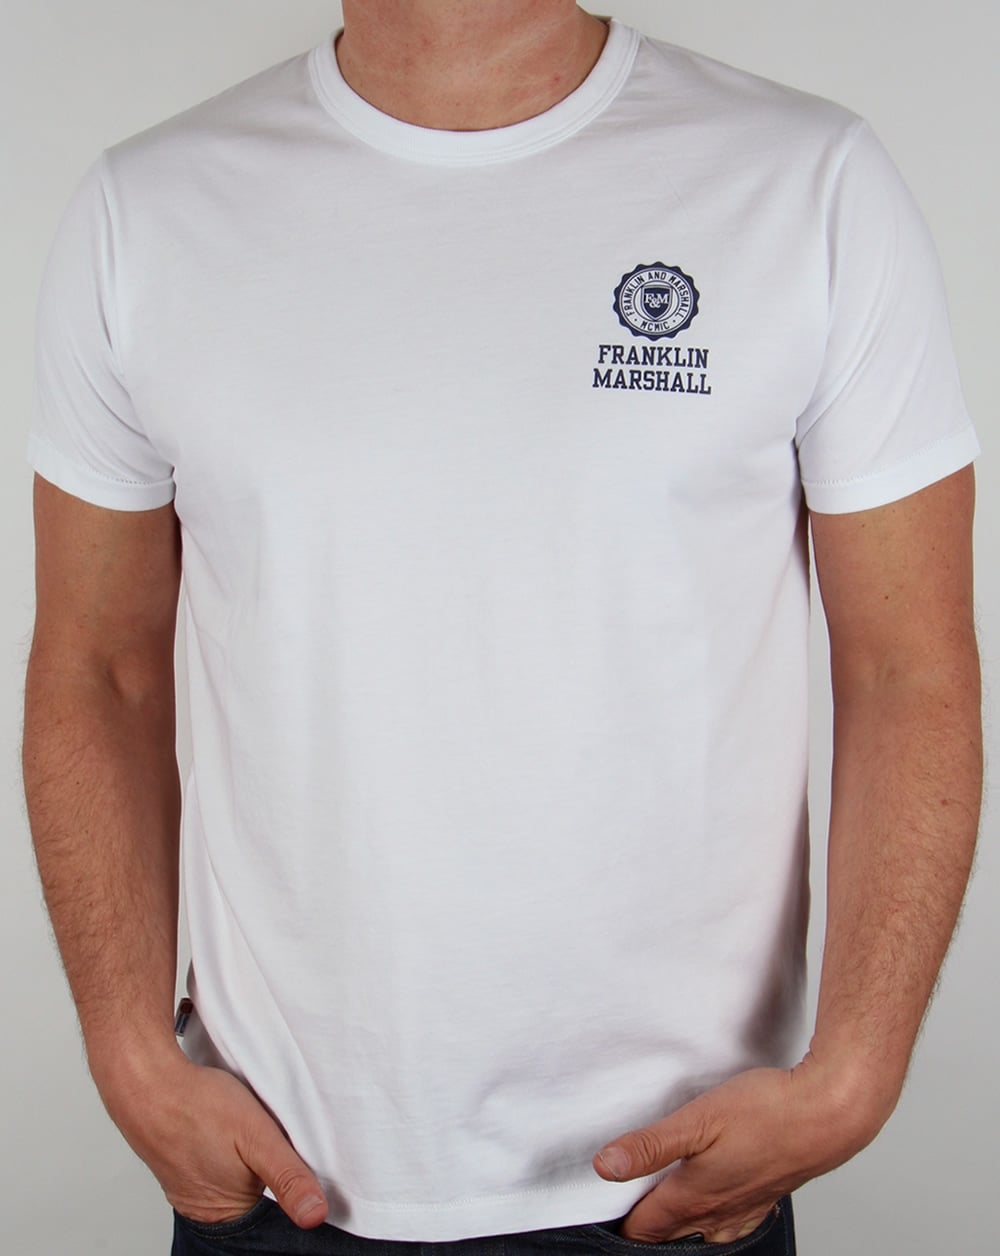 Adult Small T Shirt 68